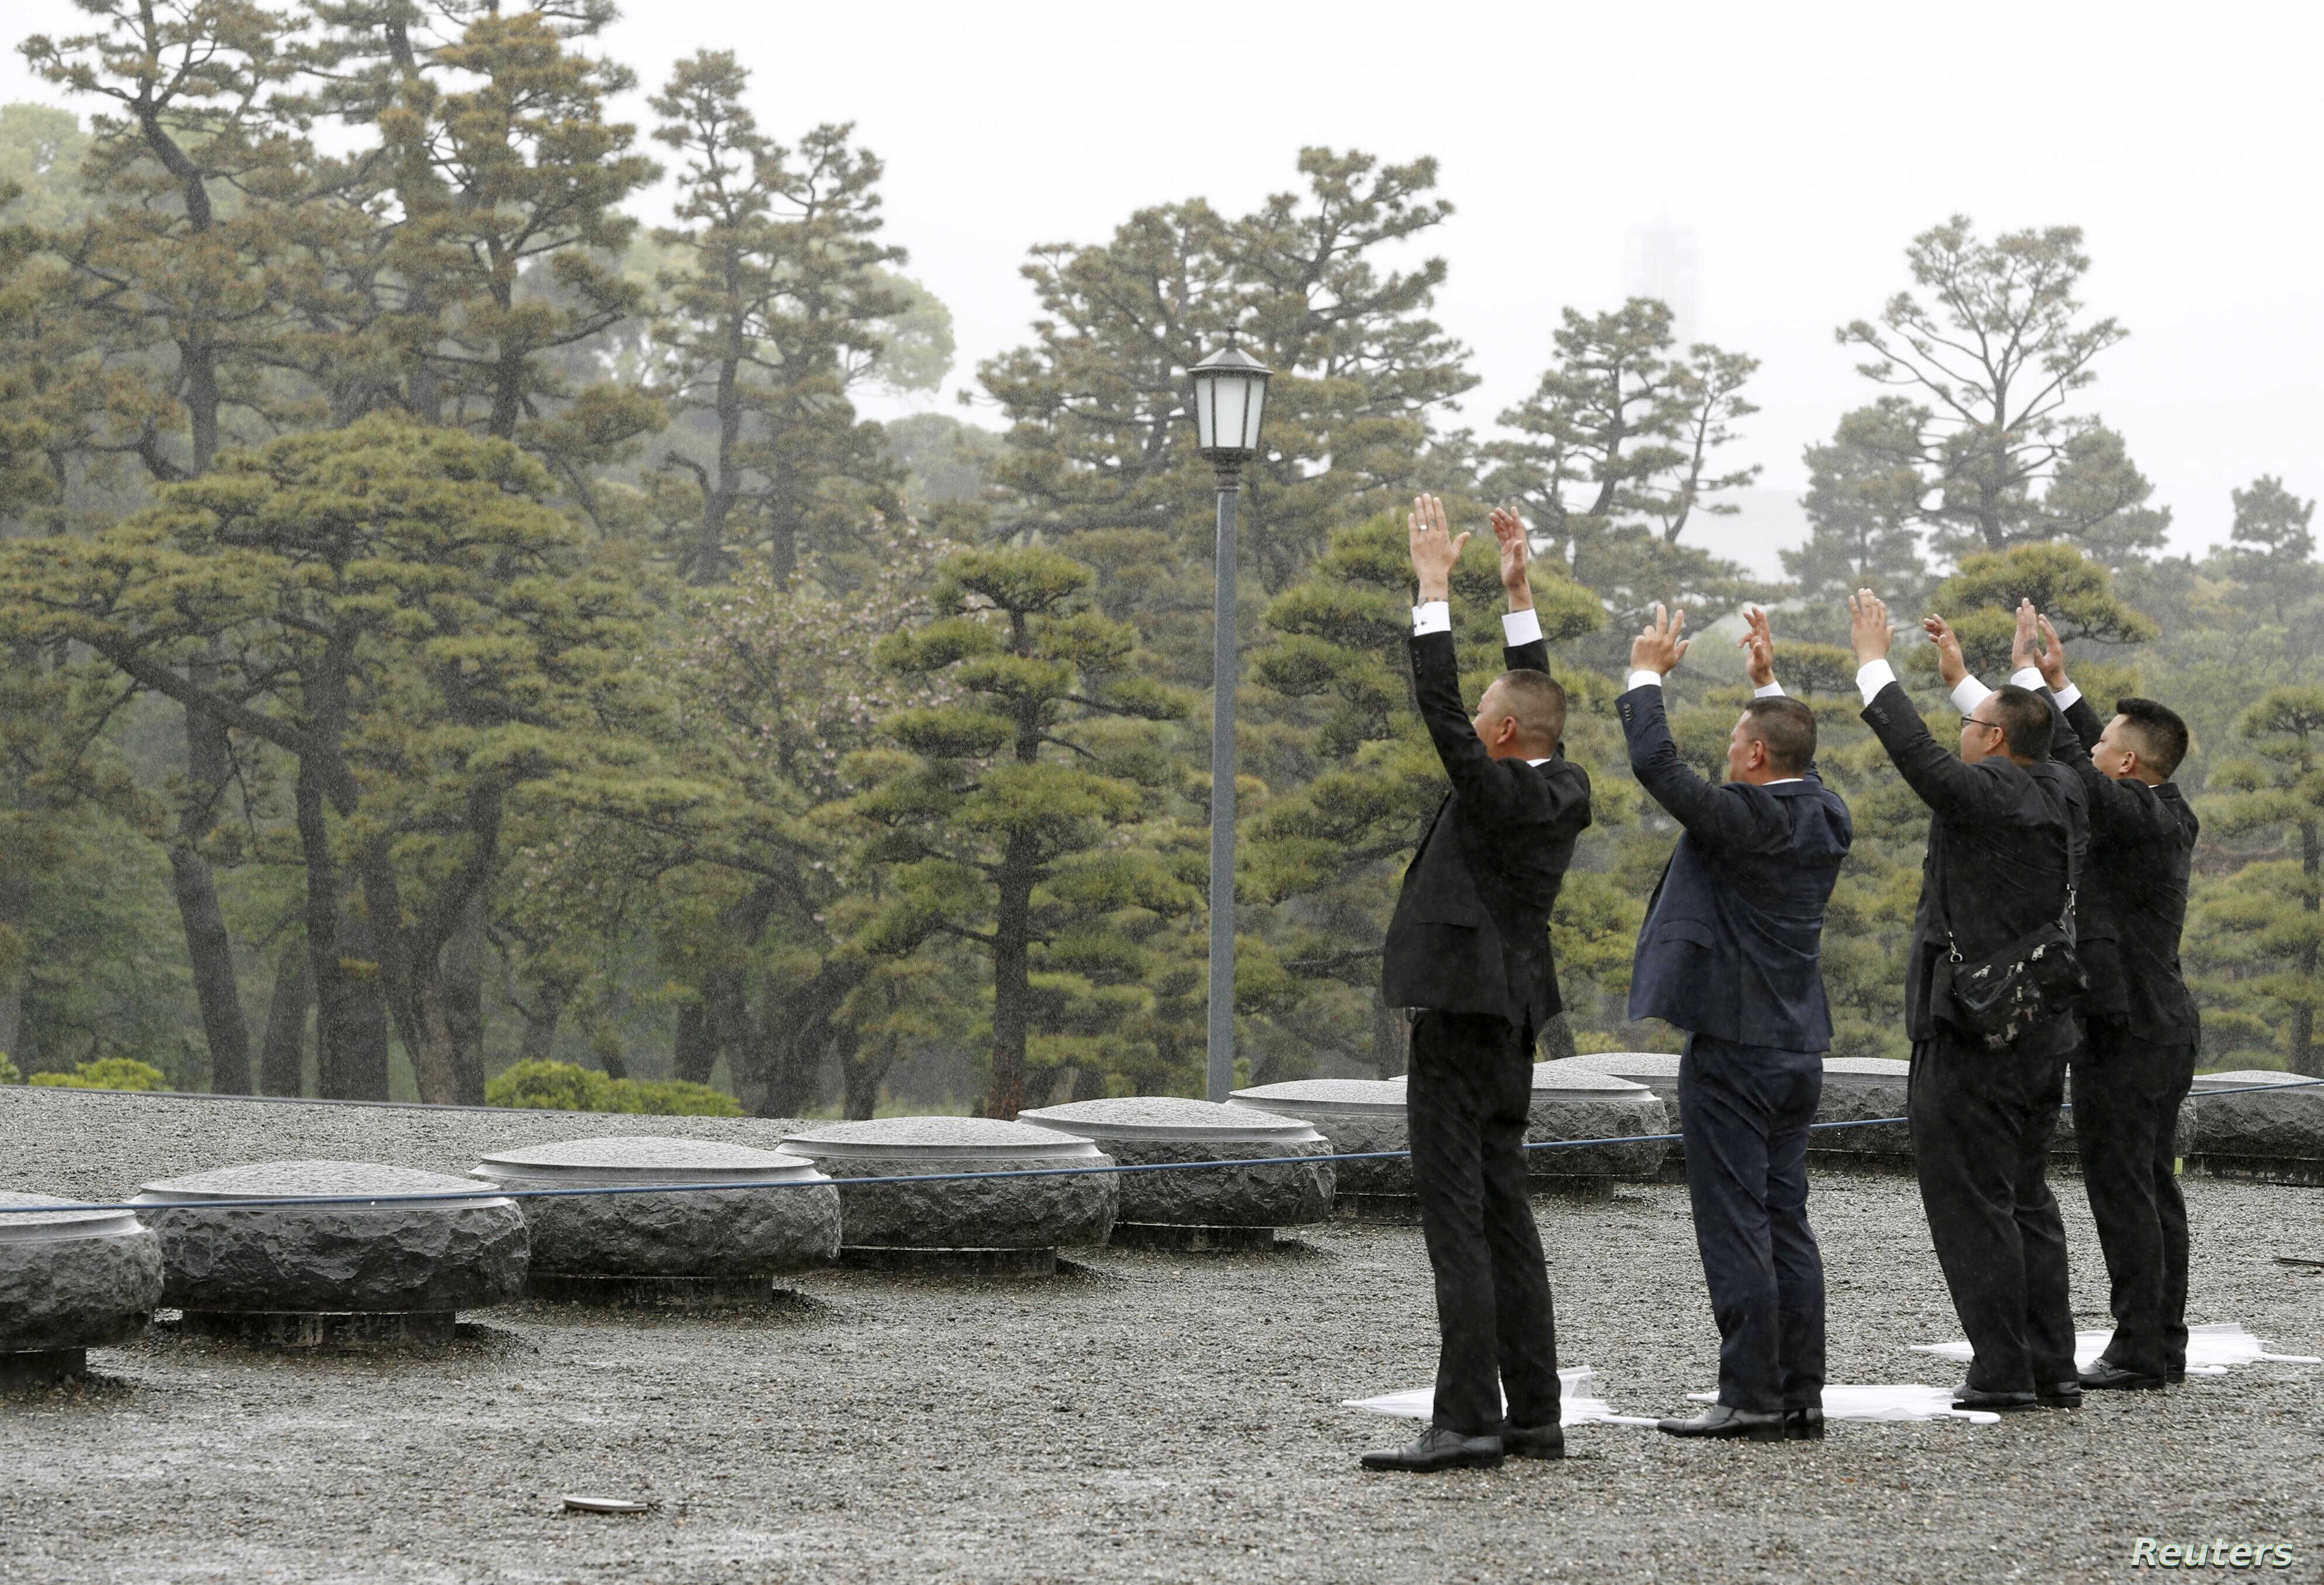 People raise hands as they shout 'banzai', or cheers, facing the Imperial Palace on the day of the Emperor Akihito's abdication in Tokyo, April 30, 2019.